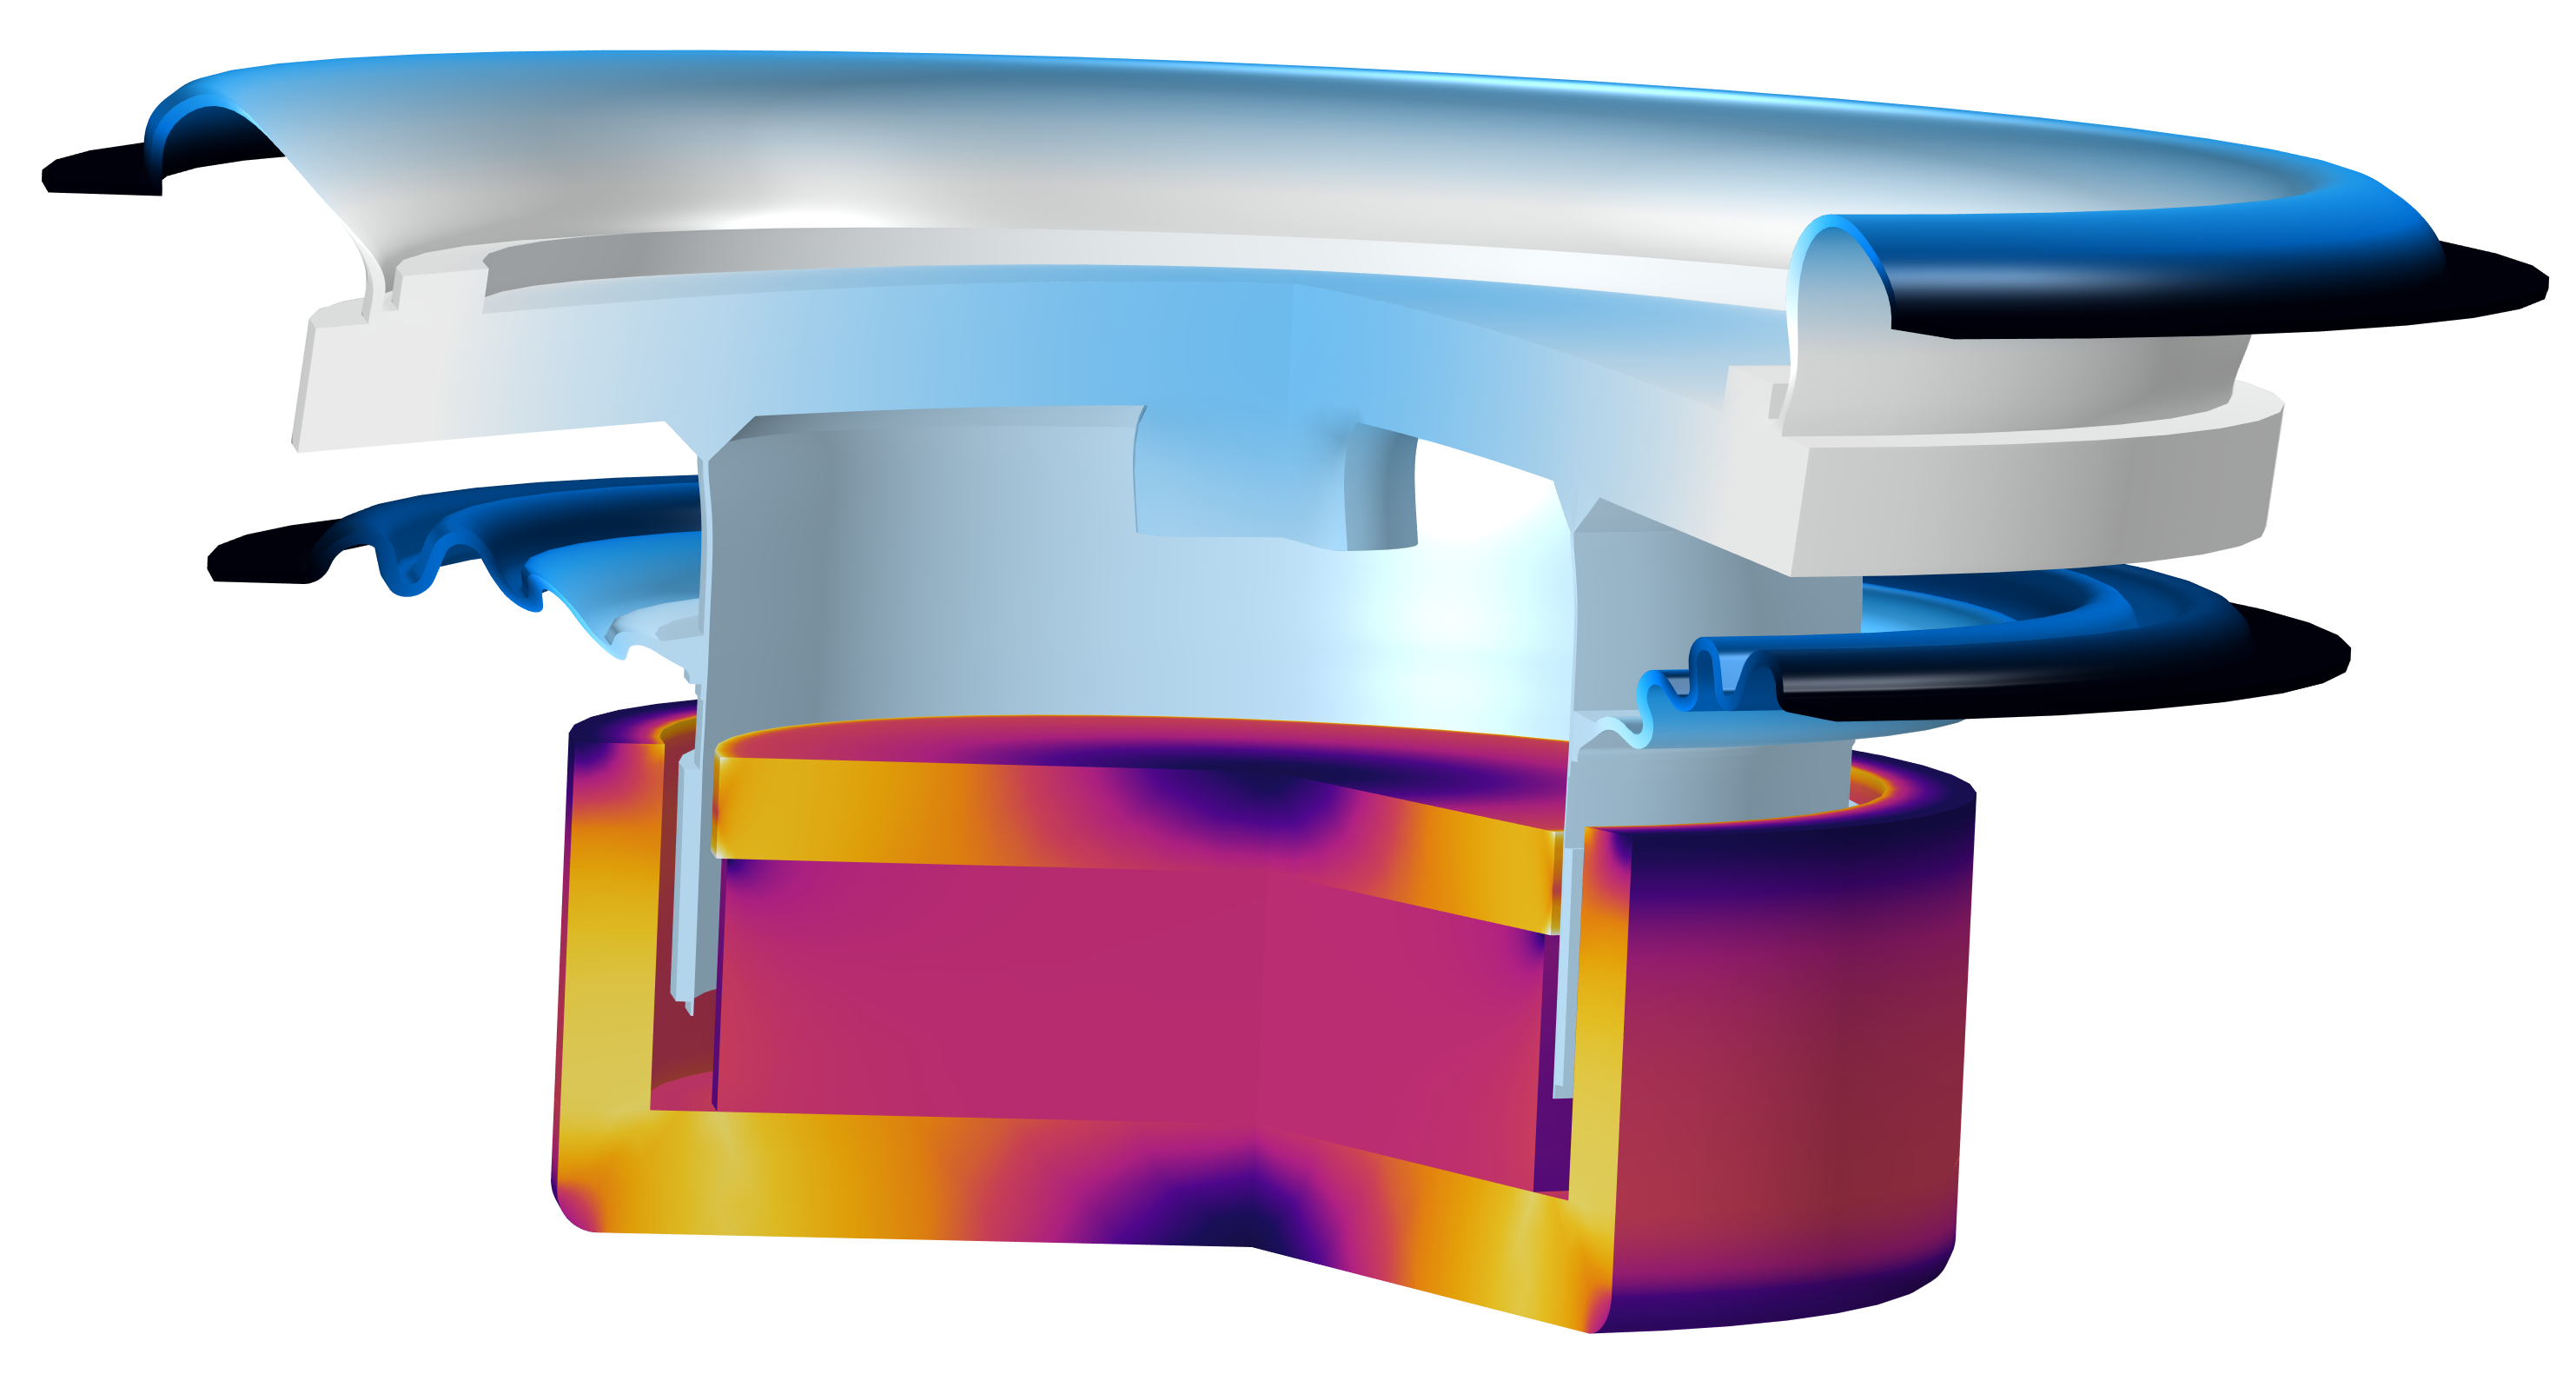 A fully coupled BMR speaker model with the diaphragm visualized in a blue color gradient and the driver visualized in magenta and orange.